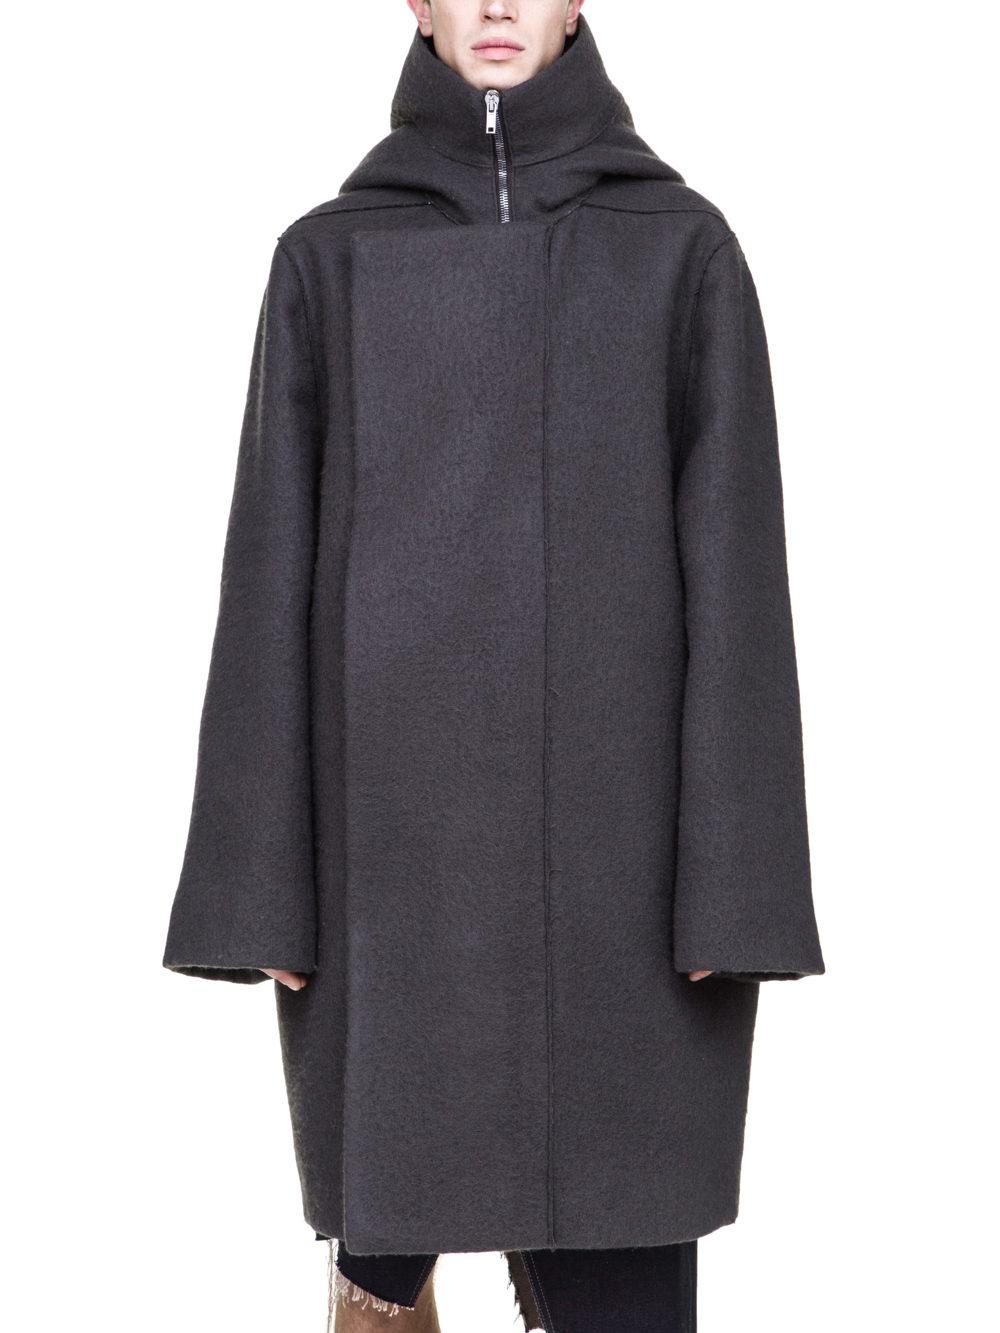 RICK OWENS OFF-THE-RUNWAY SECRET PARKA IN GREY BOILED WOOL